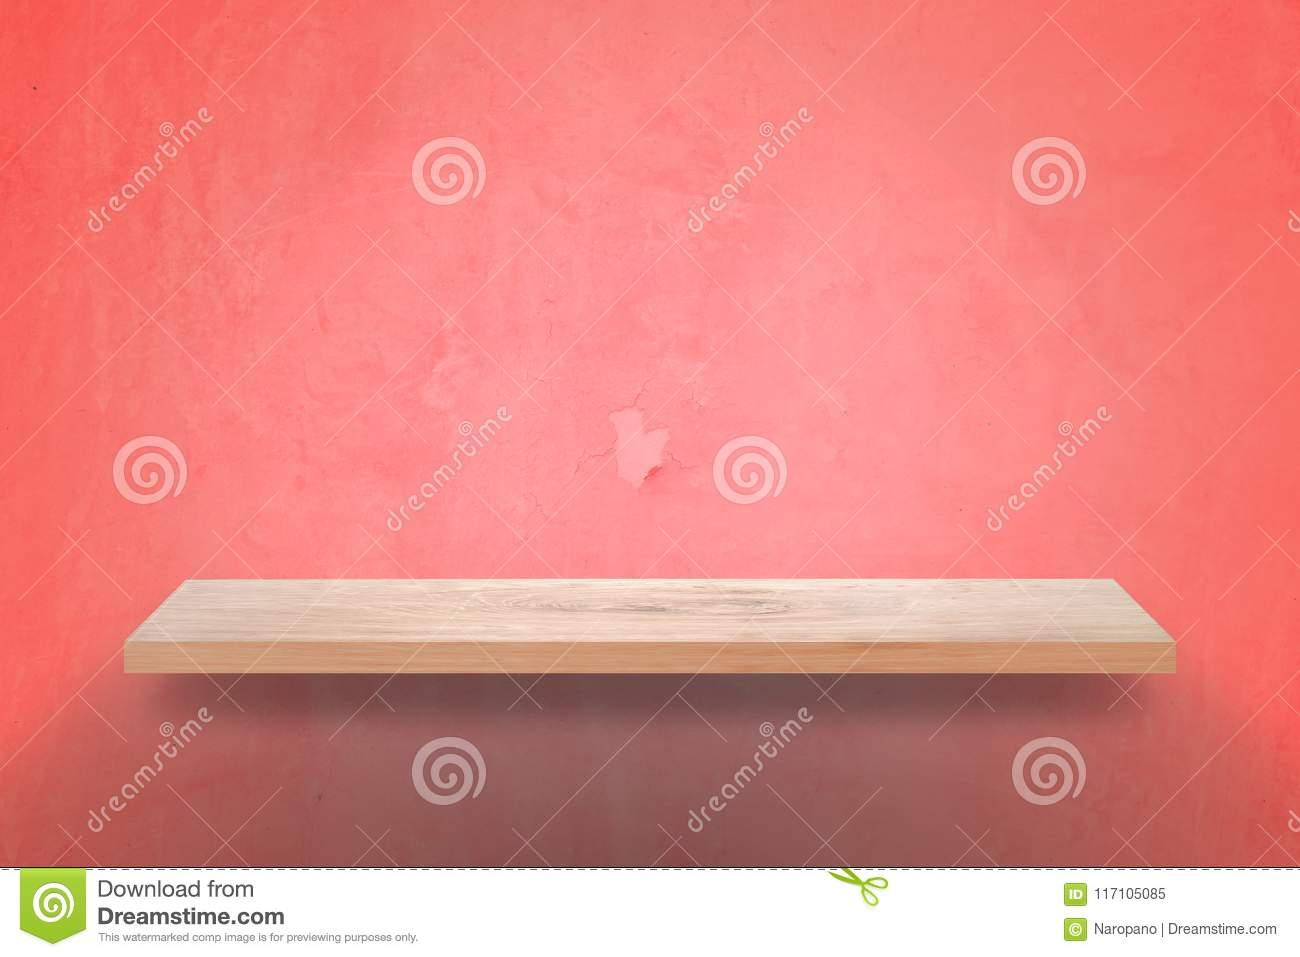 Empty wood shelf with grunge pink wall background